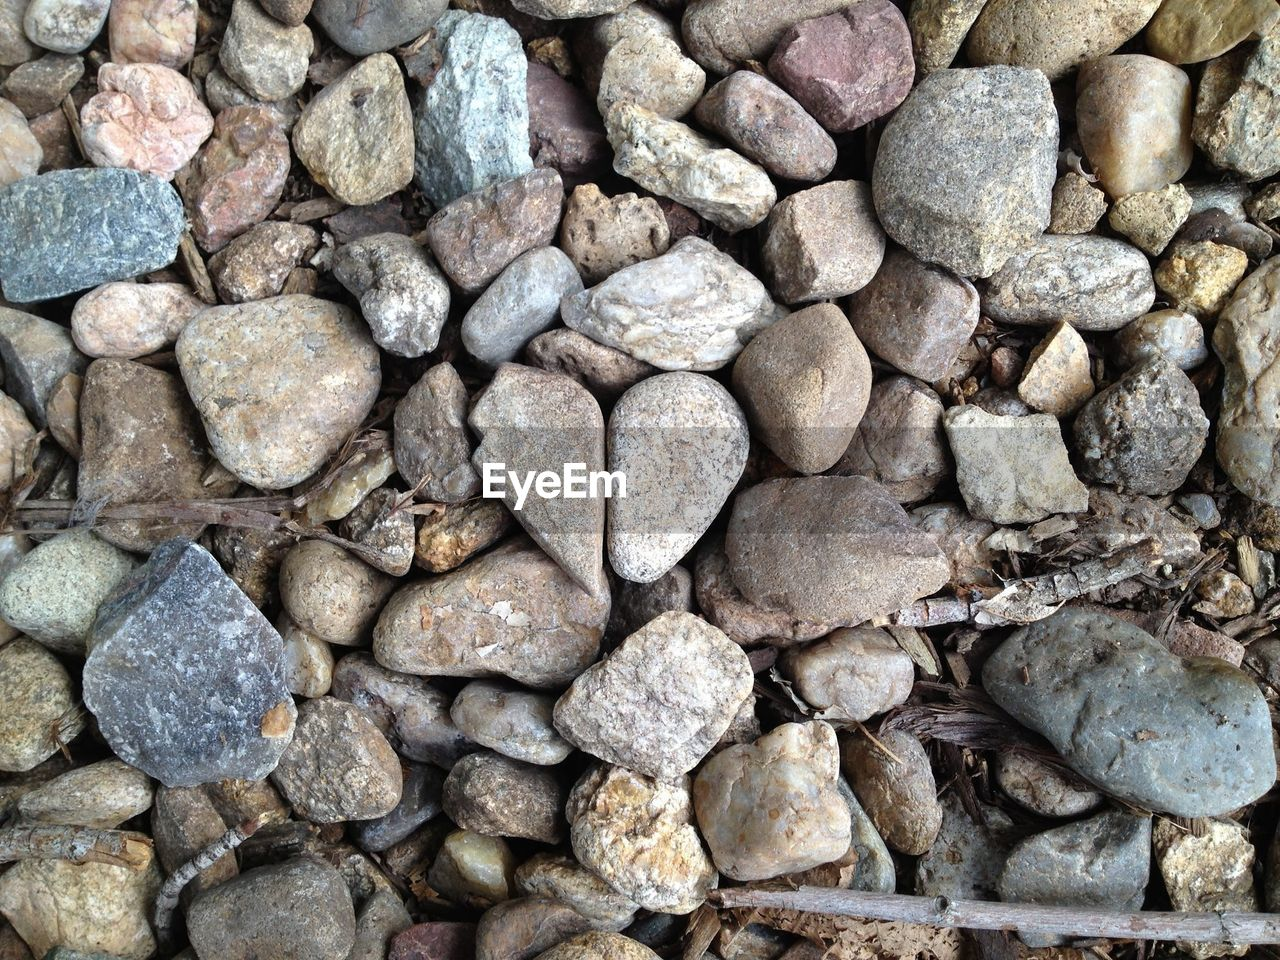 pebble, stone - object, full frame, backgrounds, rock - object, large group of objects, pebble beach, textured, nature, no people, close-up, outdoors, day